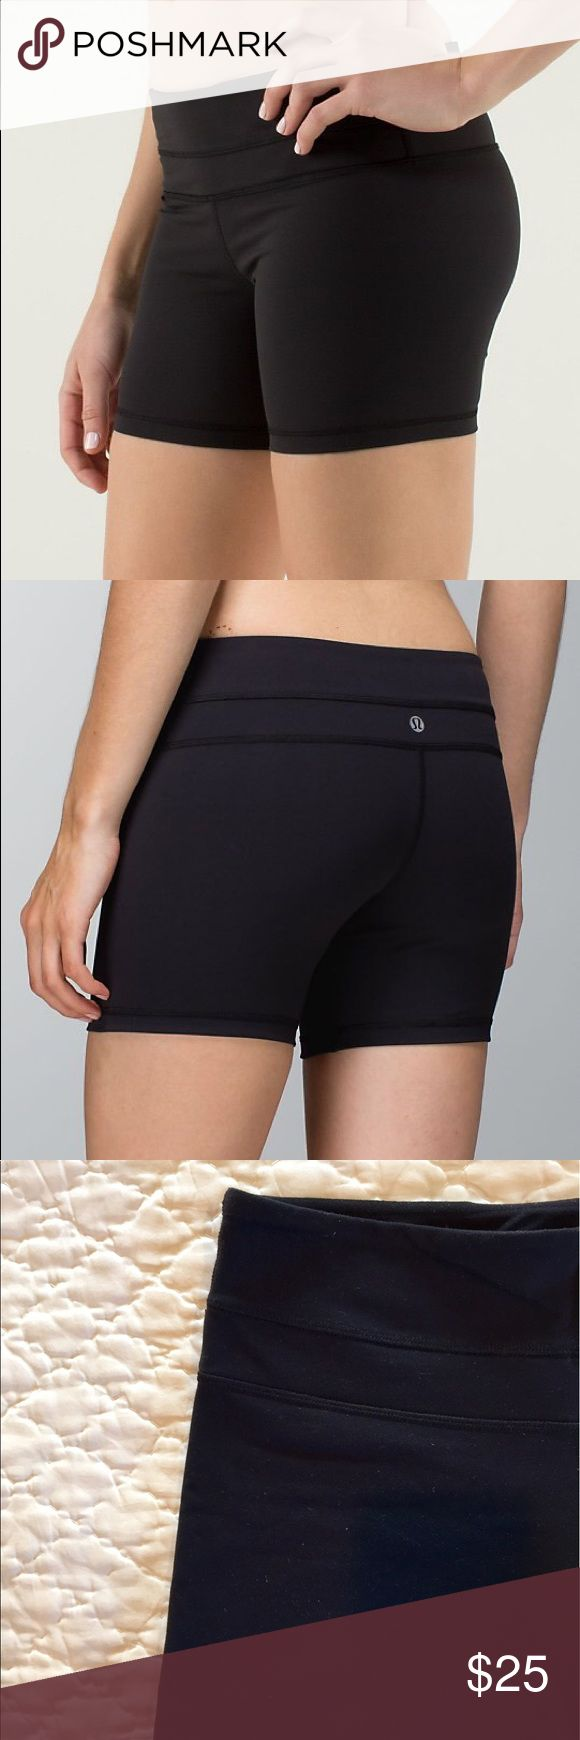 ✨Lululemon Groove Shorts!✨ Black Lululemon shorts with hidden pocket in waistband. Can be worn high waisted and conform nicely so there is movement as you run, walk, do yoga or train. Minimal wear. Will fit for those who wear either size 4 or 6 in Lululemon bottoms. lululemon athletica Shorts